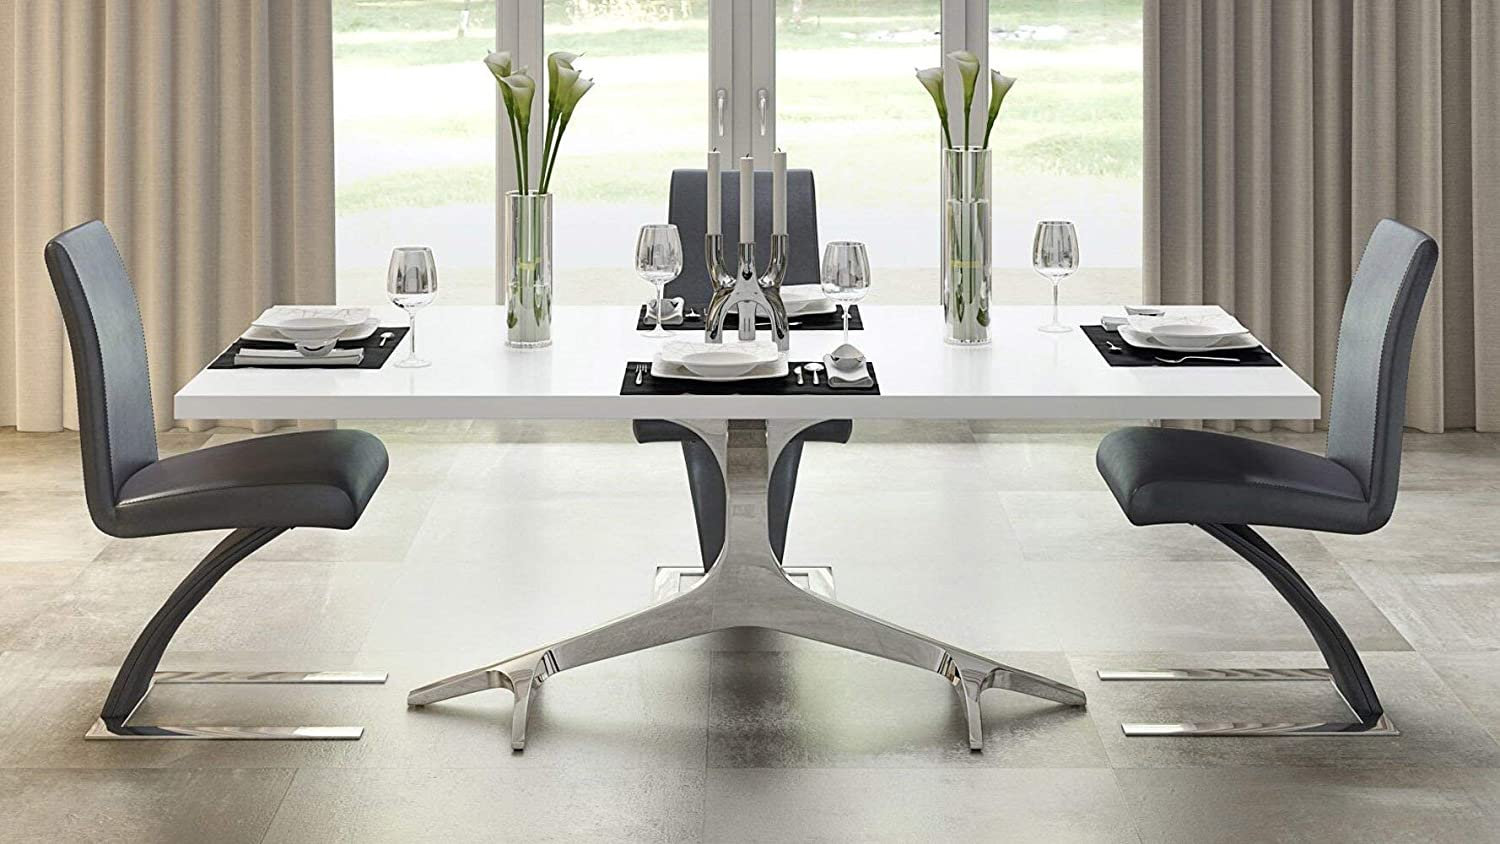 Zuri Furniture Modern Arbre Dining Table in White High Gloss Lacquer with Polished Stainless Steel Base